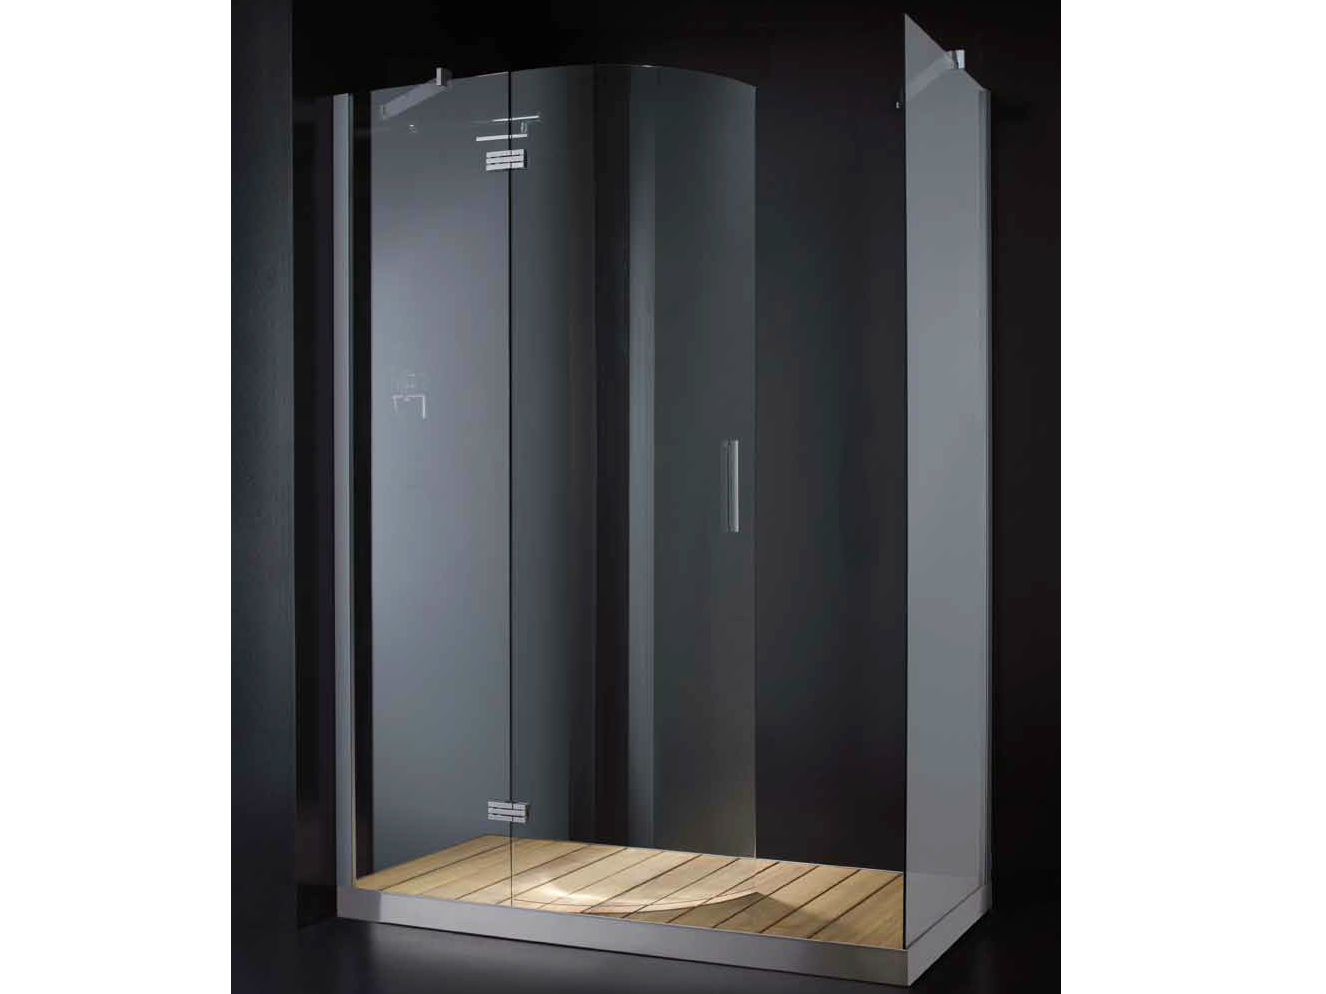 cabine de douche rectangulaire en verre avec porte. Black Bedroom Furniture Sets. Home Design Ideas